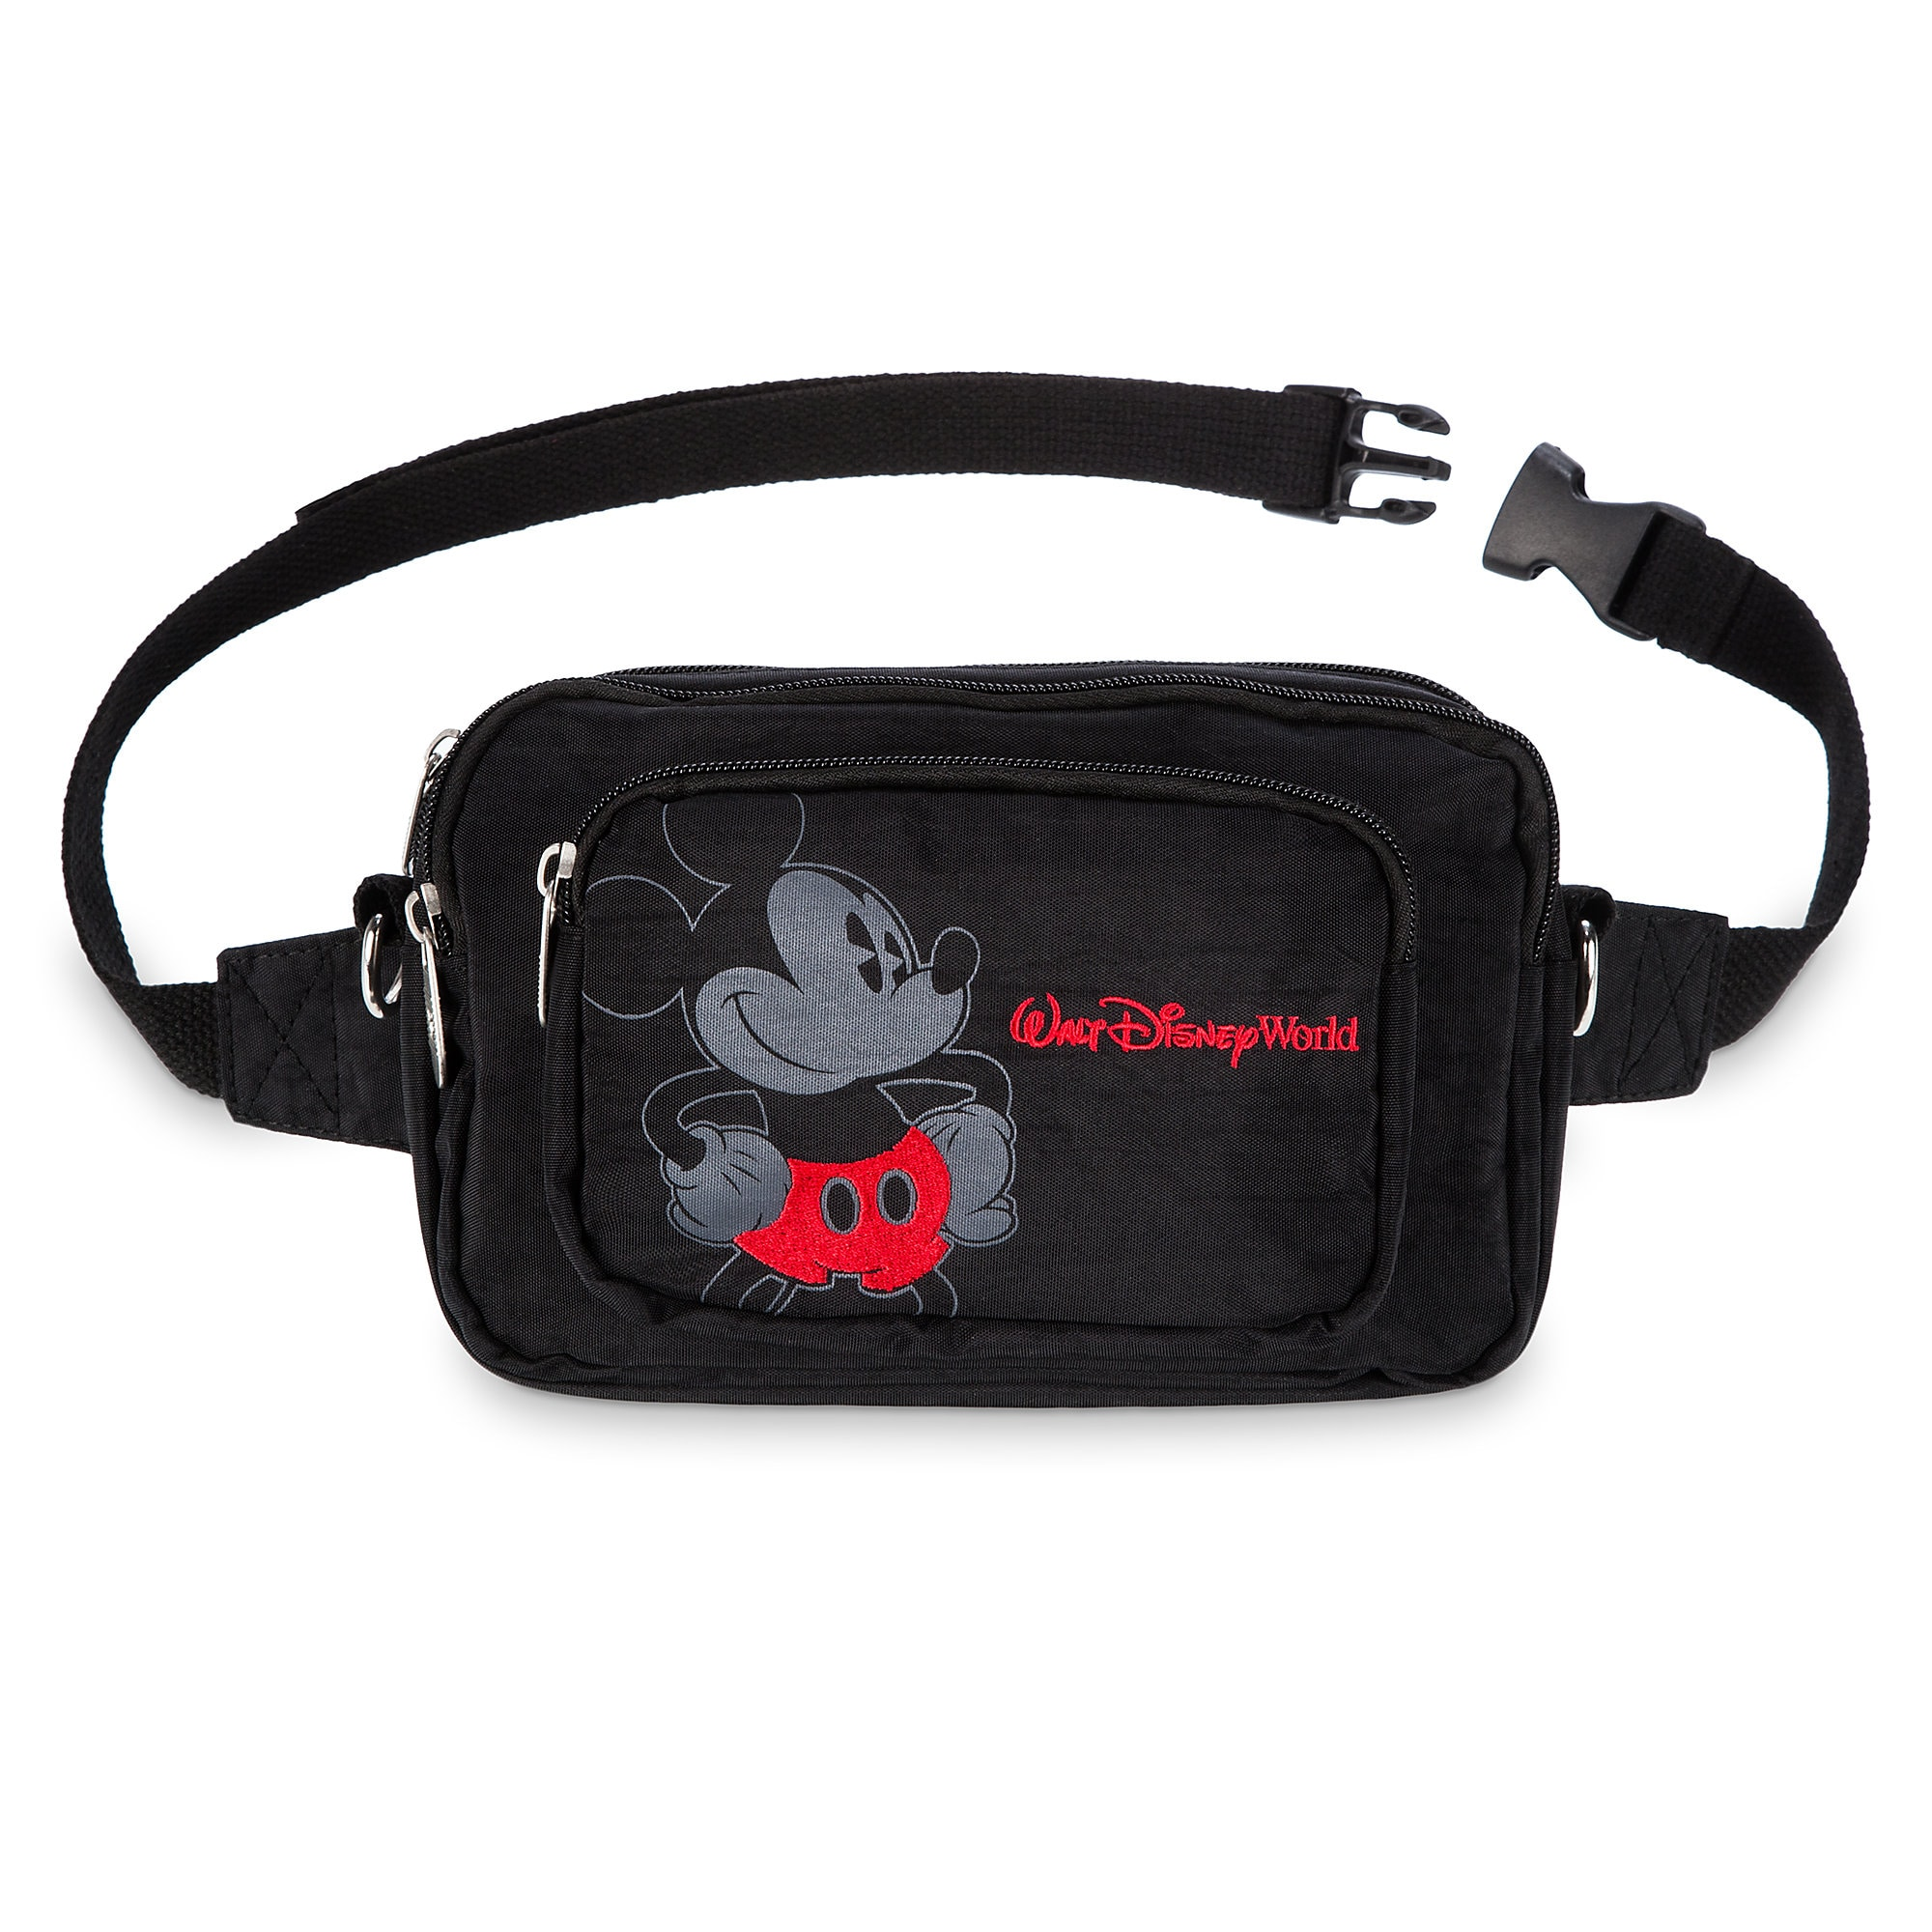 NEW MM 28 Disney Park Mickey Mouse Adjustable Fanny Pack